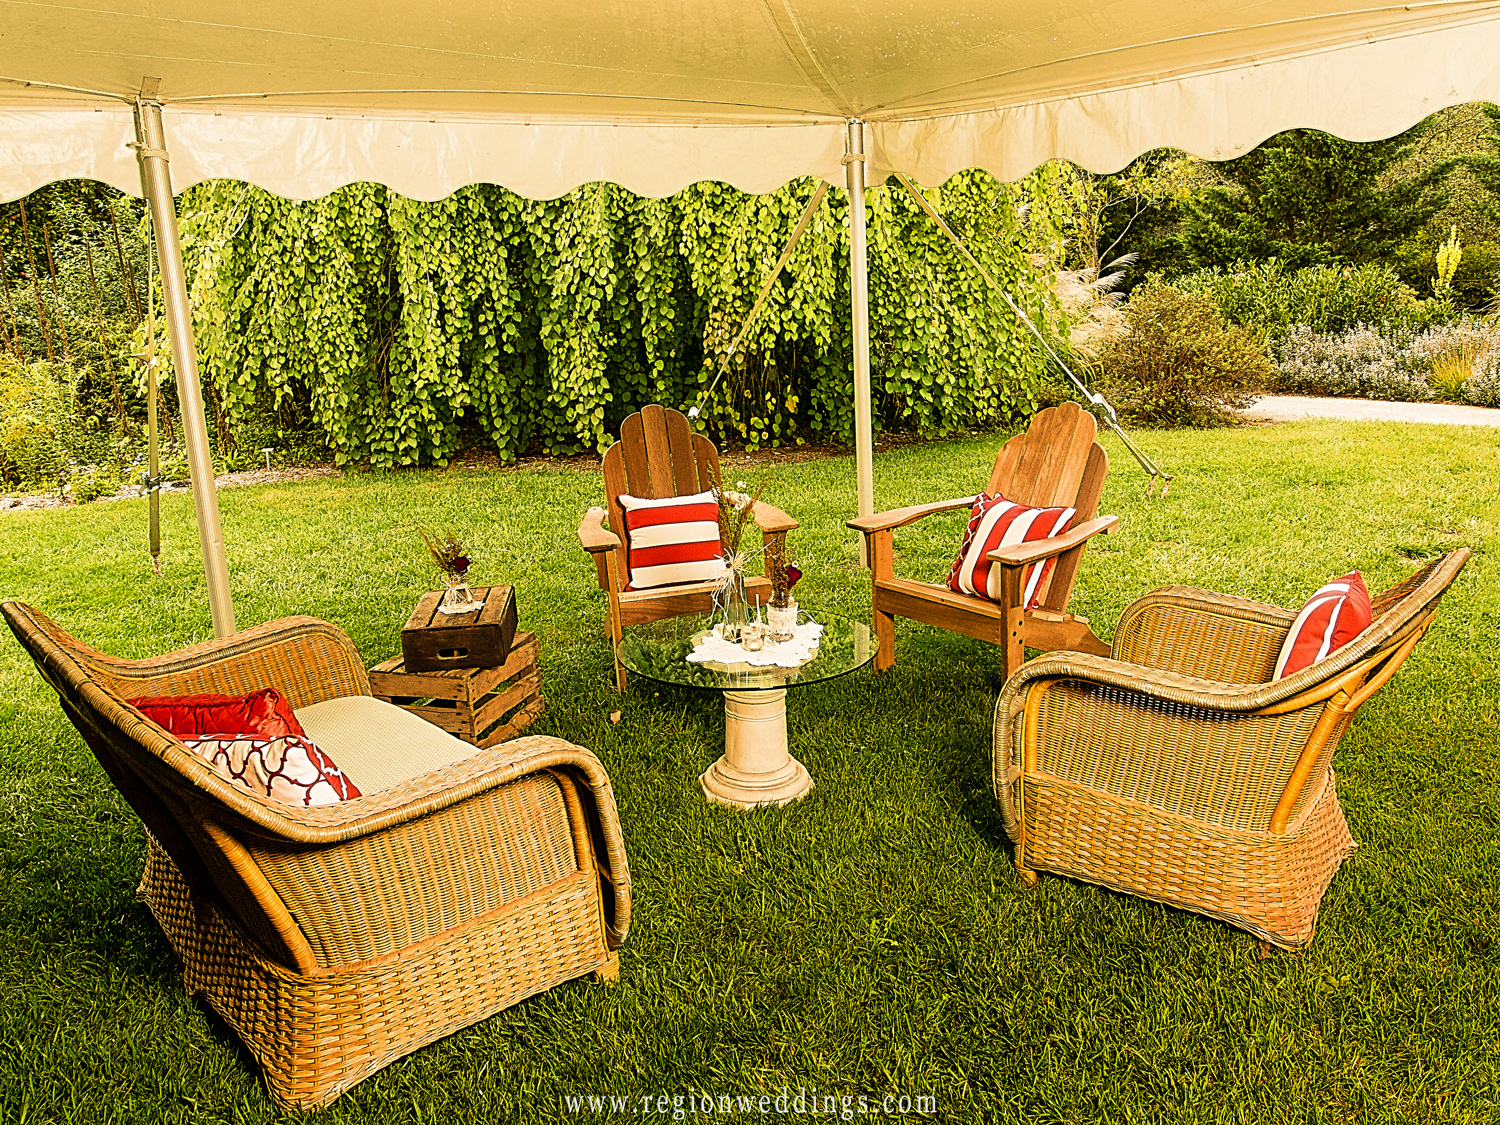 A lounge area at an outdoor wedding reception.